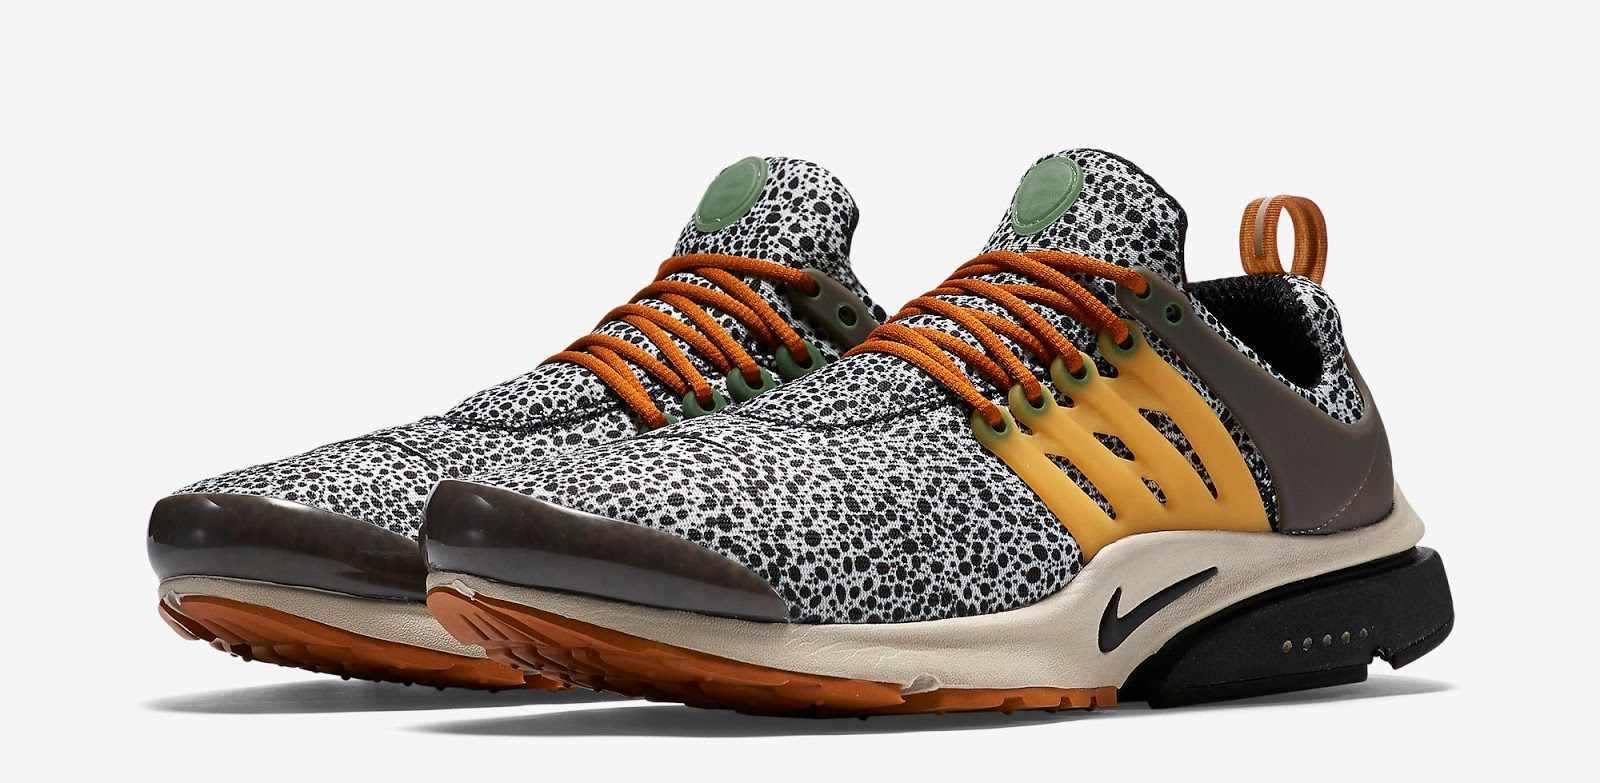 release date ad397 1b6a4 This Nike Air Presto gets the